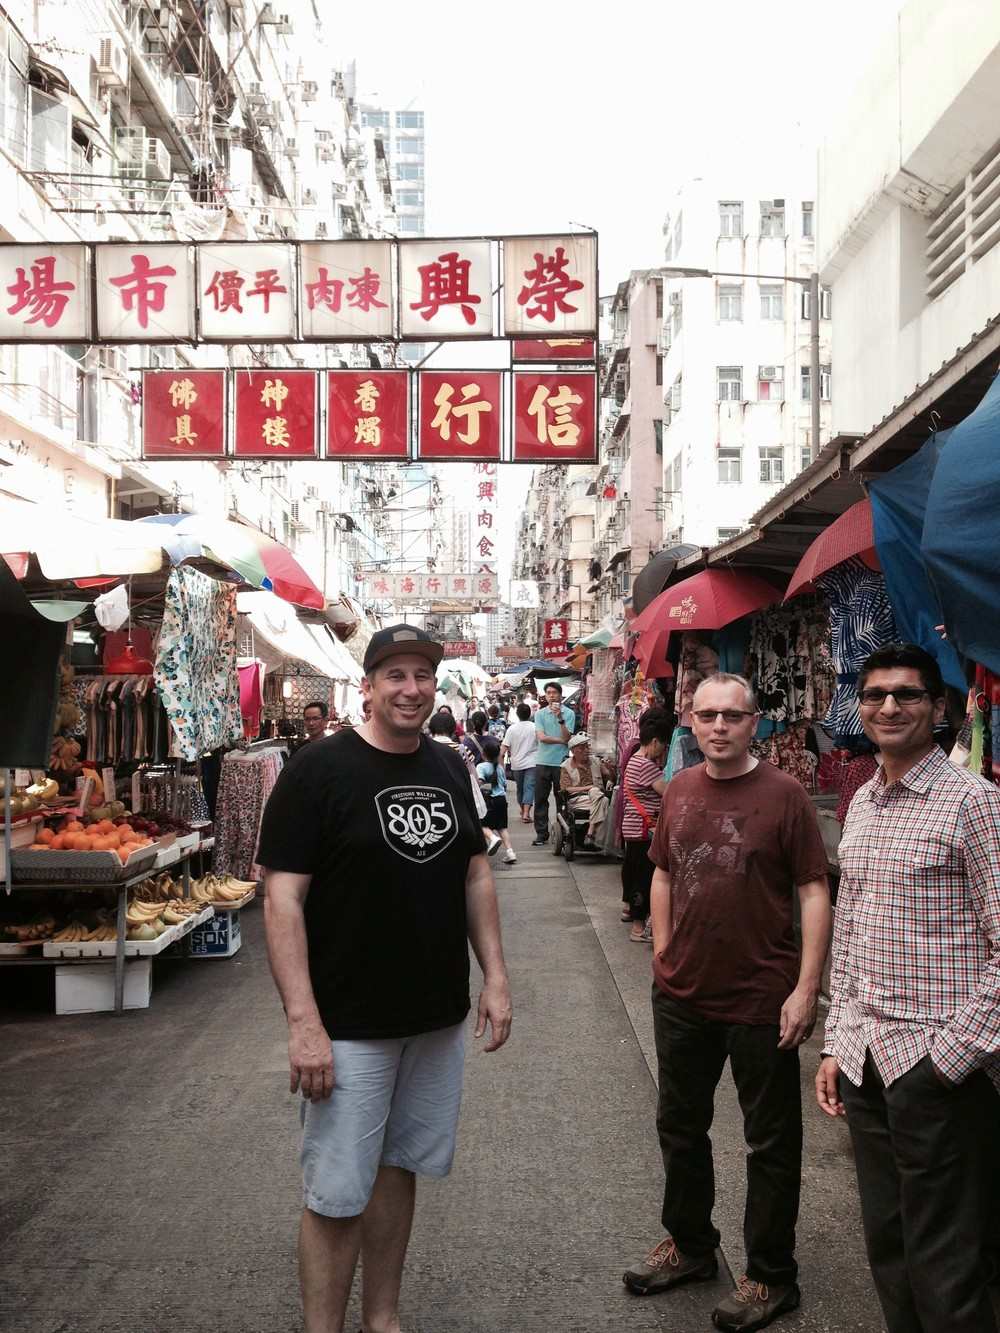 The MFG founders are in China to meet with Seasun Games to discuss future collaborations. The trip included touring Hong Kong, a quick visit to Macao, and several nights in Zhuhai.